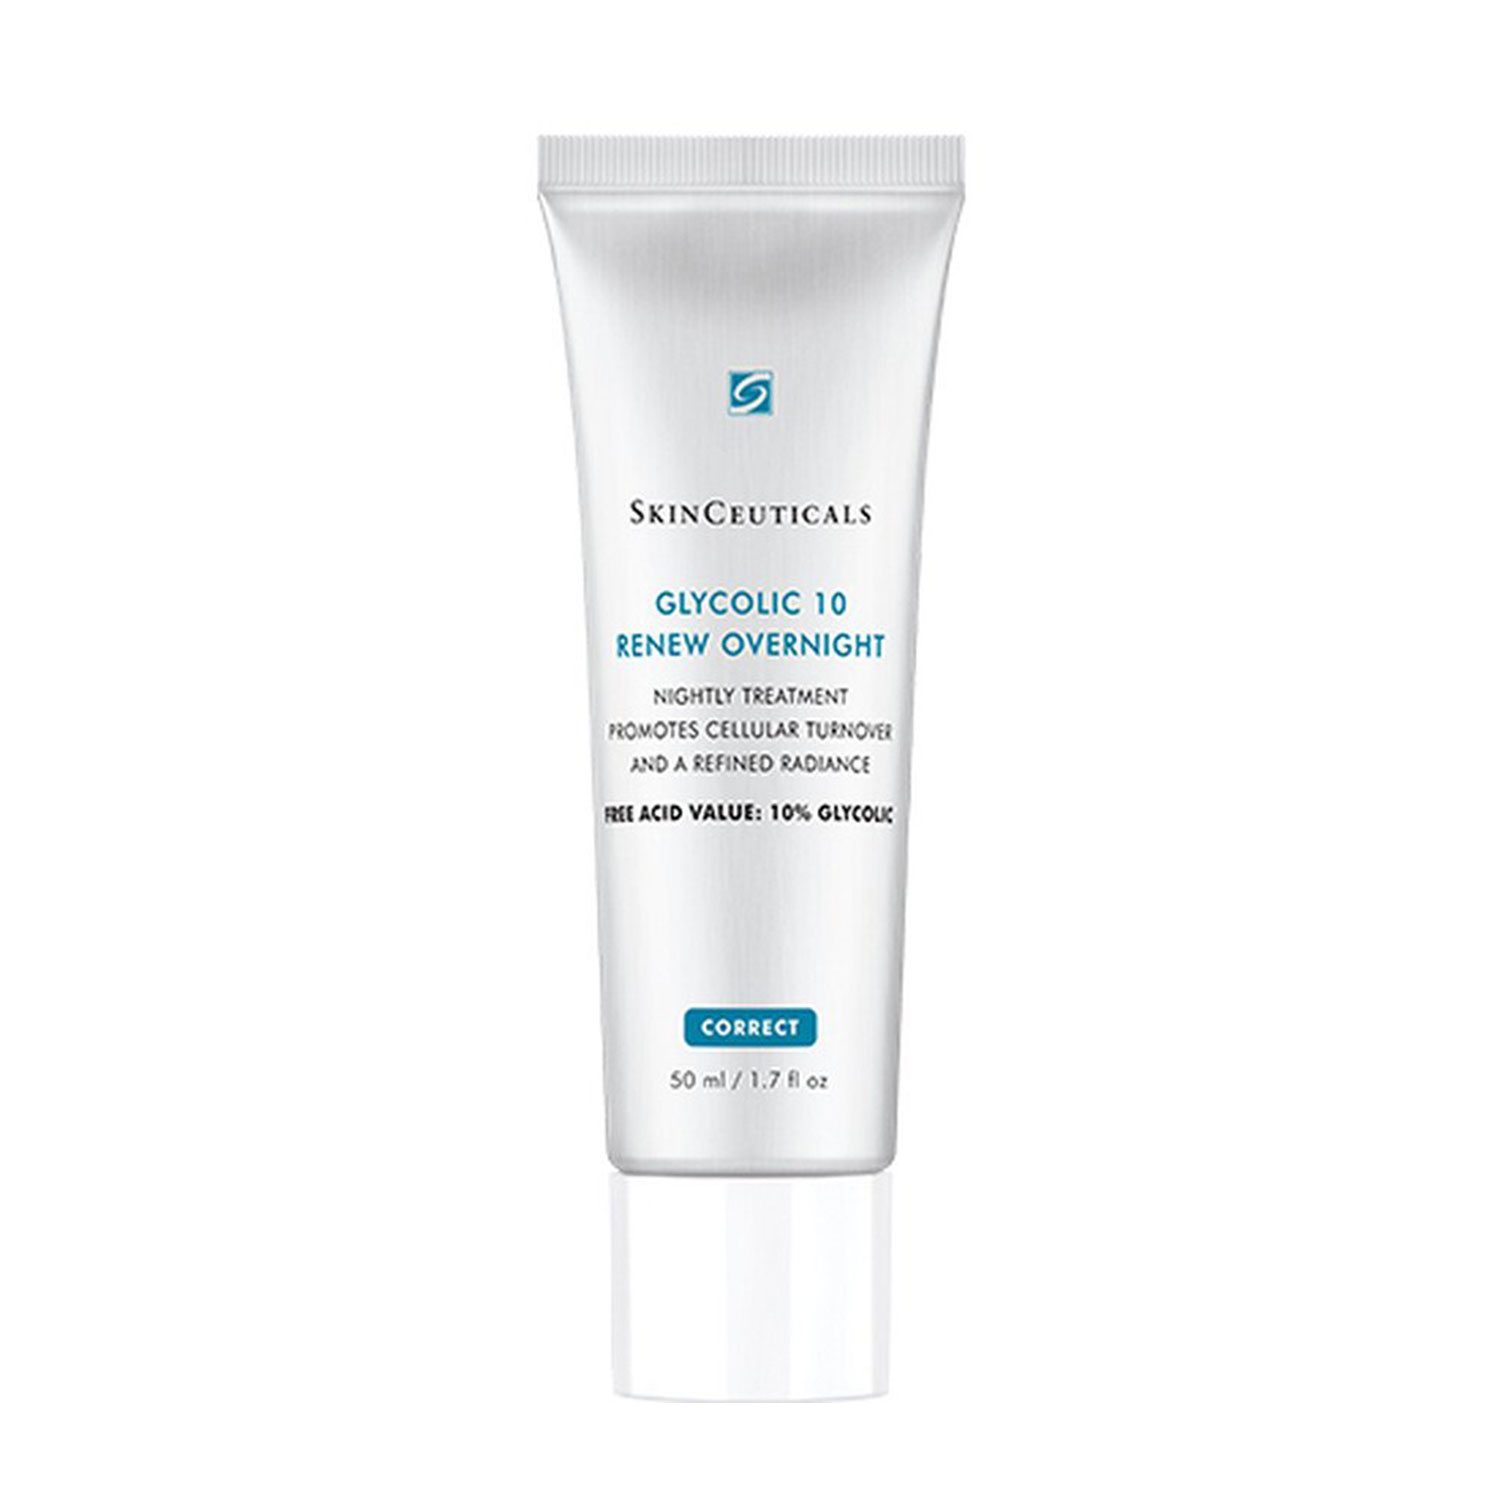 glycolic rewnew overnight acid cream